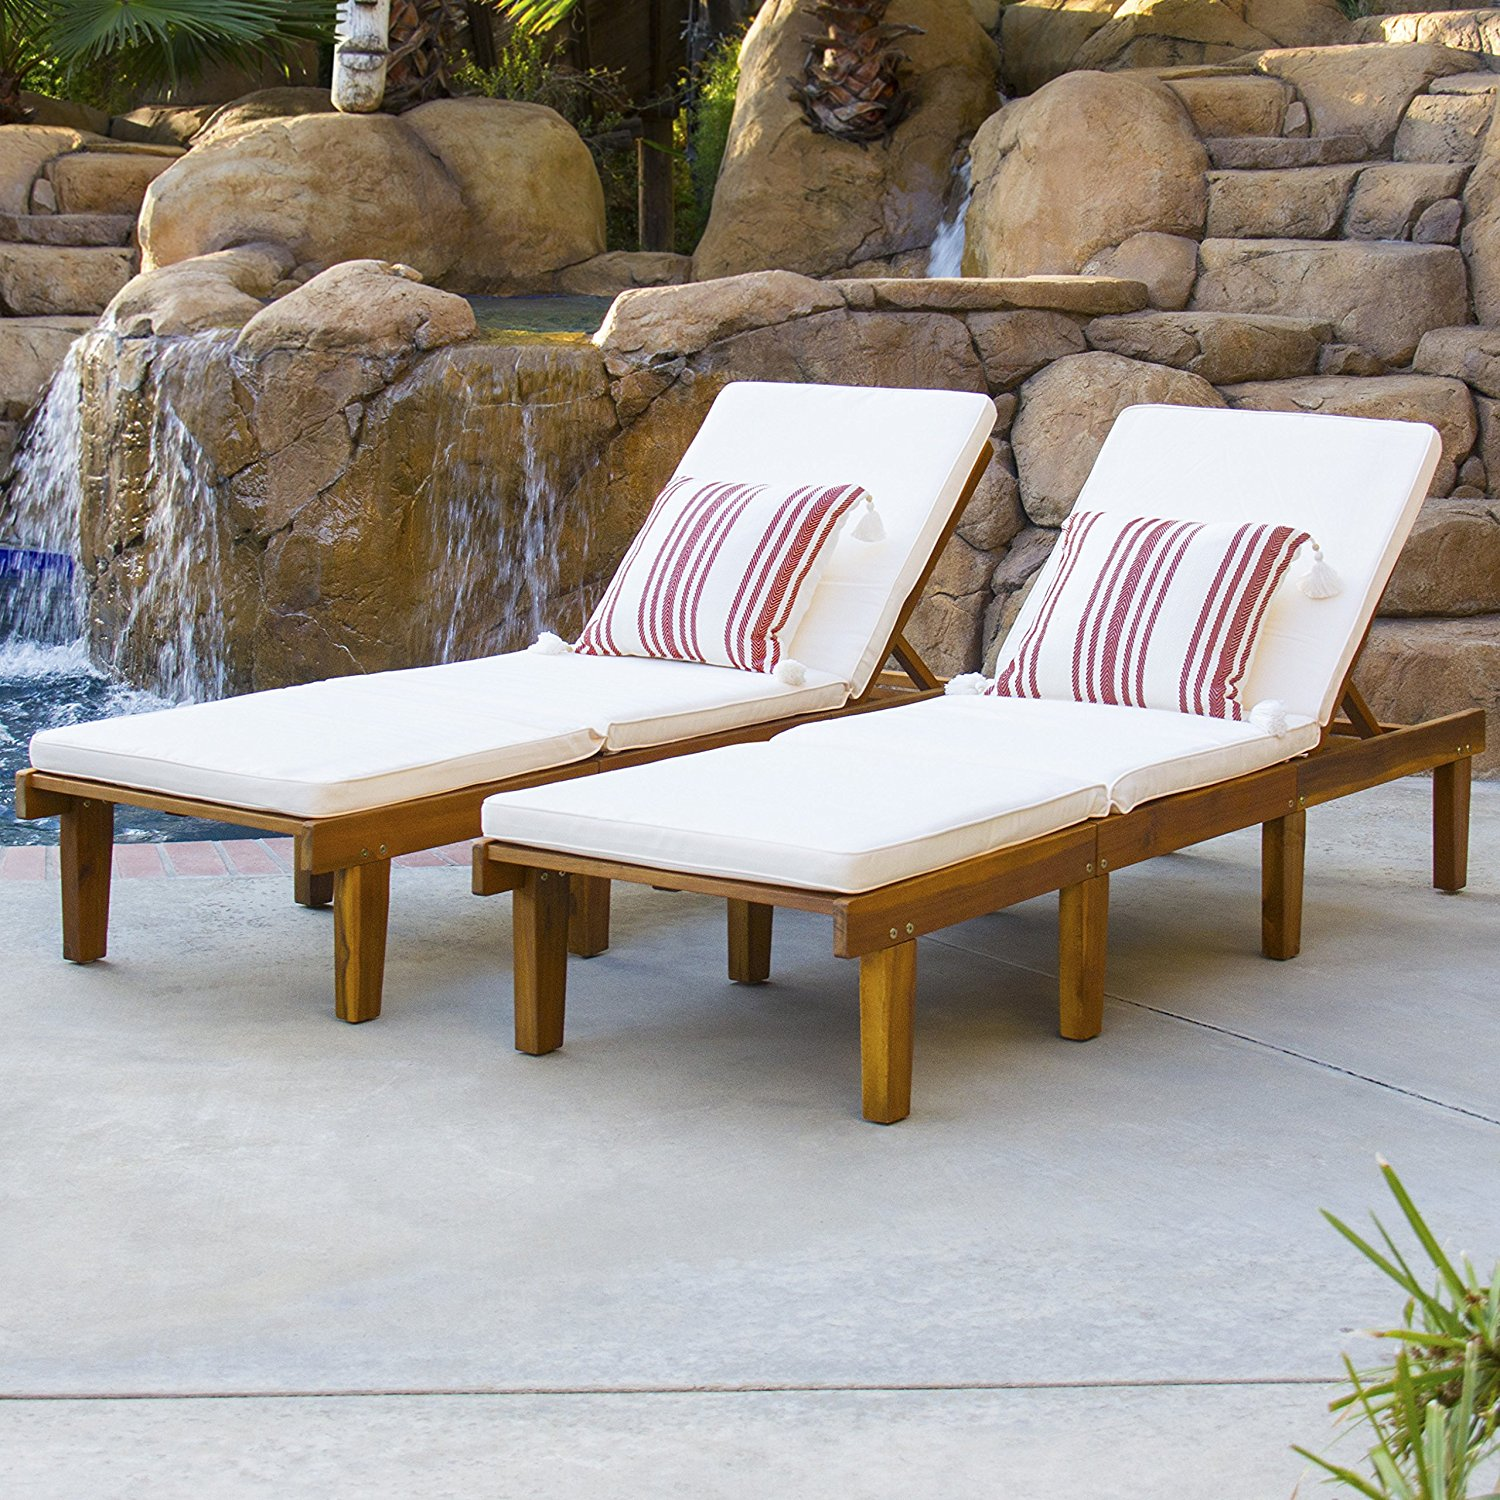 Patio Adjustable Wood Chaise Lounge, Set Of 2, White Weather Resistant Padded Cushions Included, Sturdy Construction, Comfortable, Ideal For Poolside, Garden, Porch, Outdoor Furniture + Expert Guide